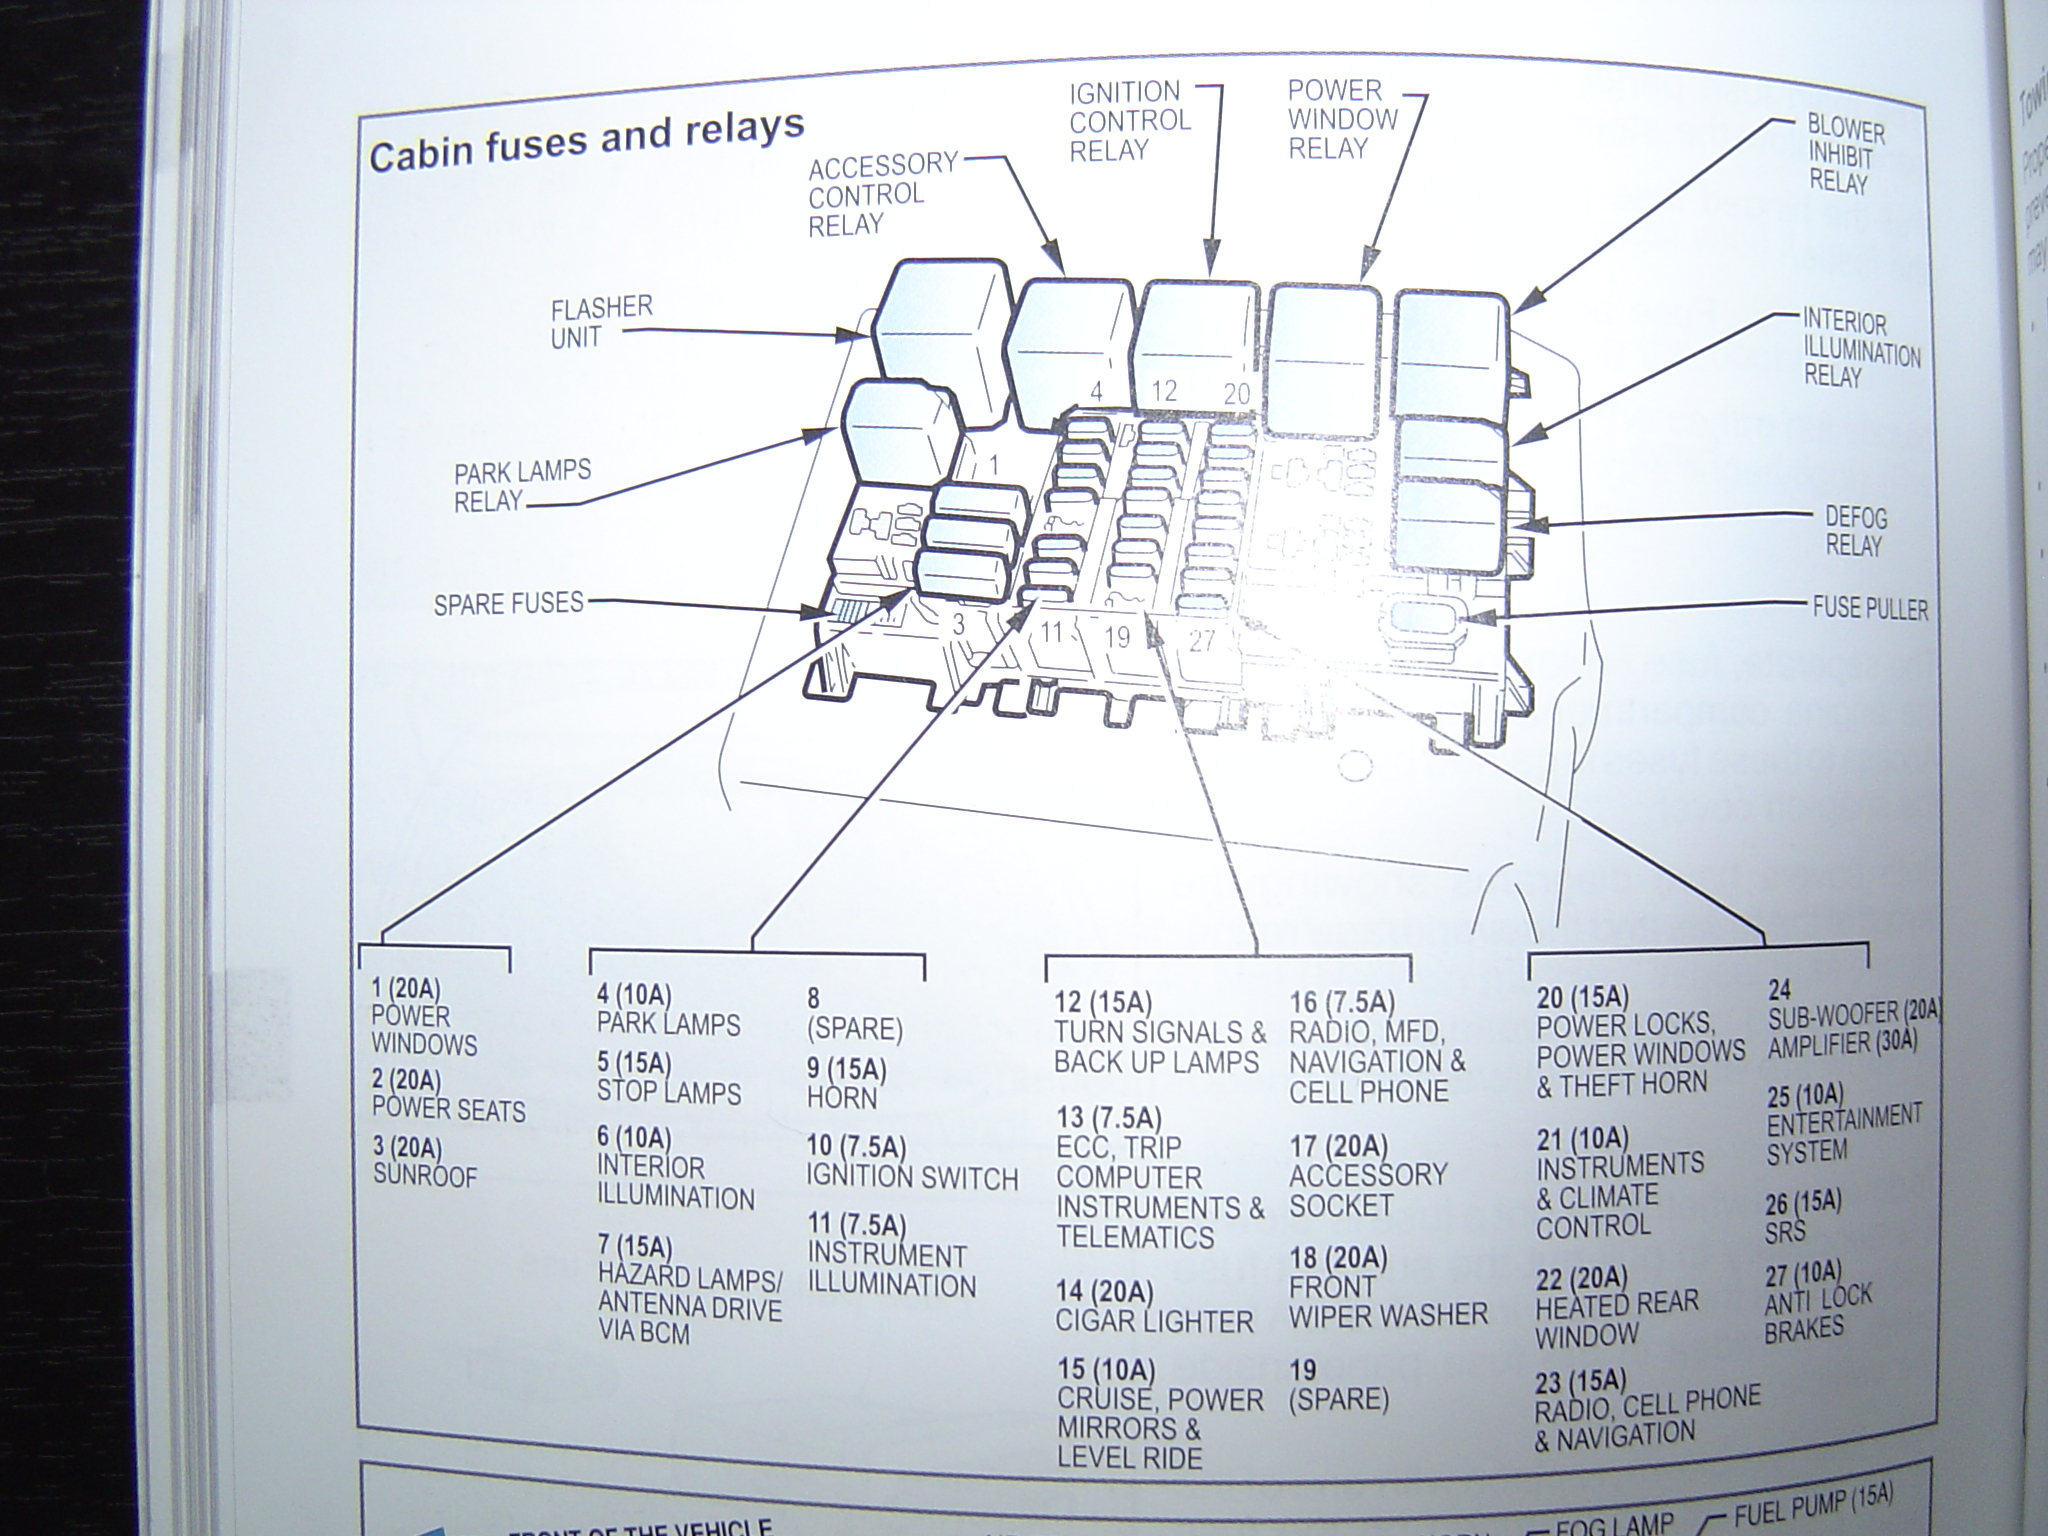 VY_CABIN_FUSEBOX cabin fuse box diagrams ba bf vx vy vz ve ba fuse box at couponss.co